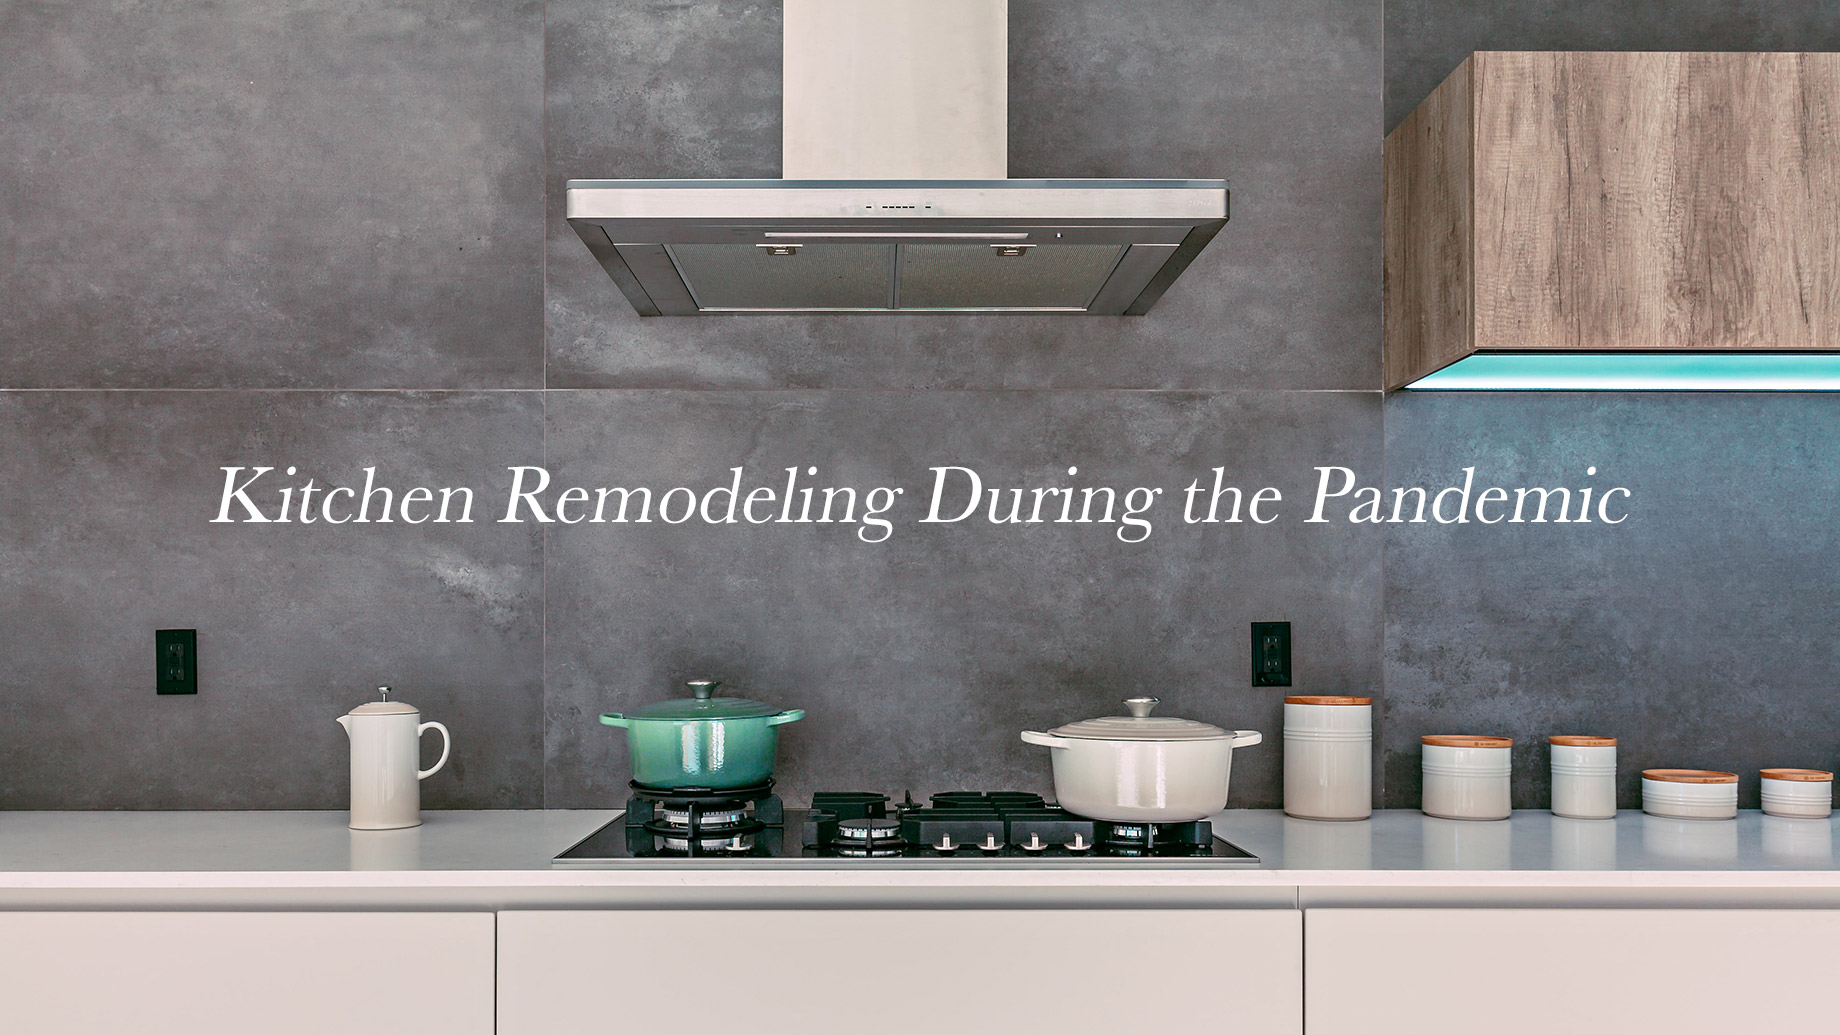 Kitchen Remodeling During the Pandemic